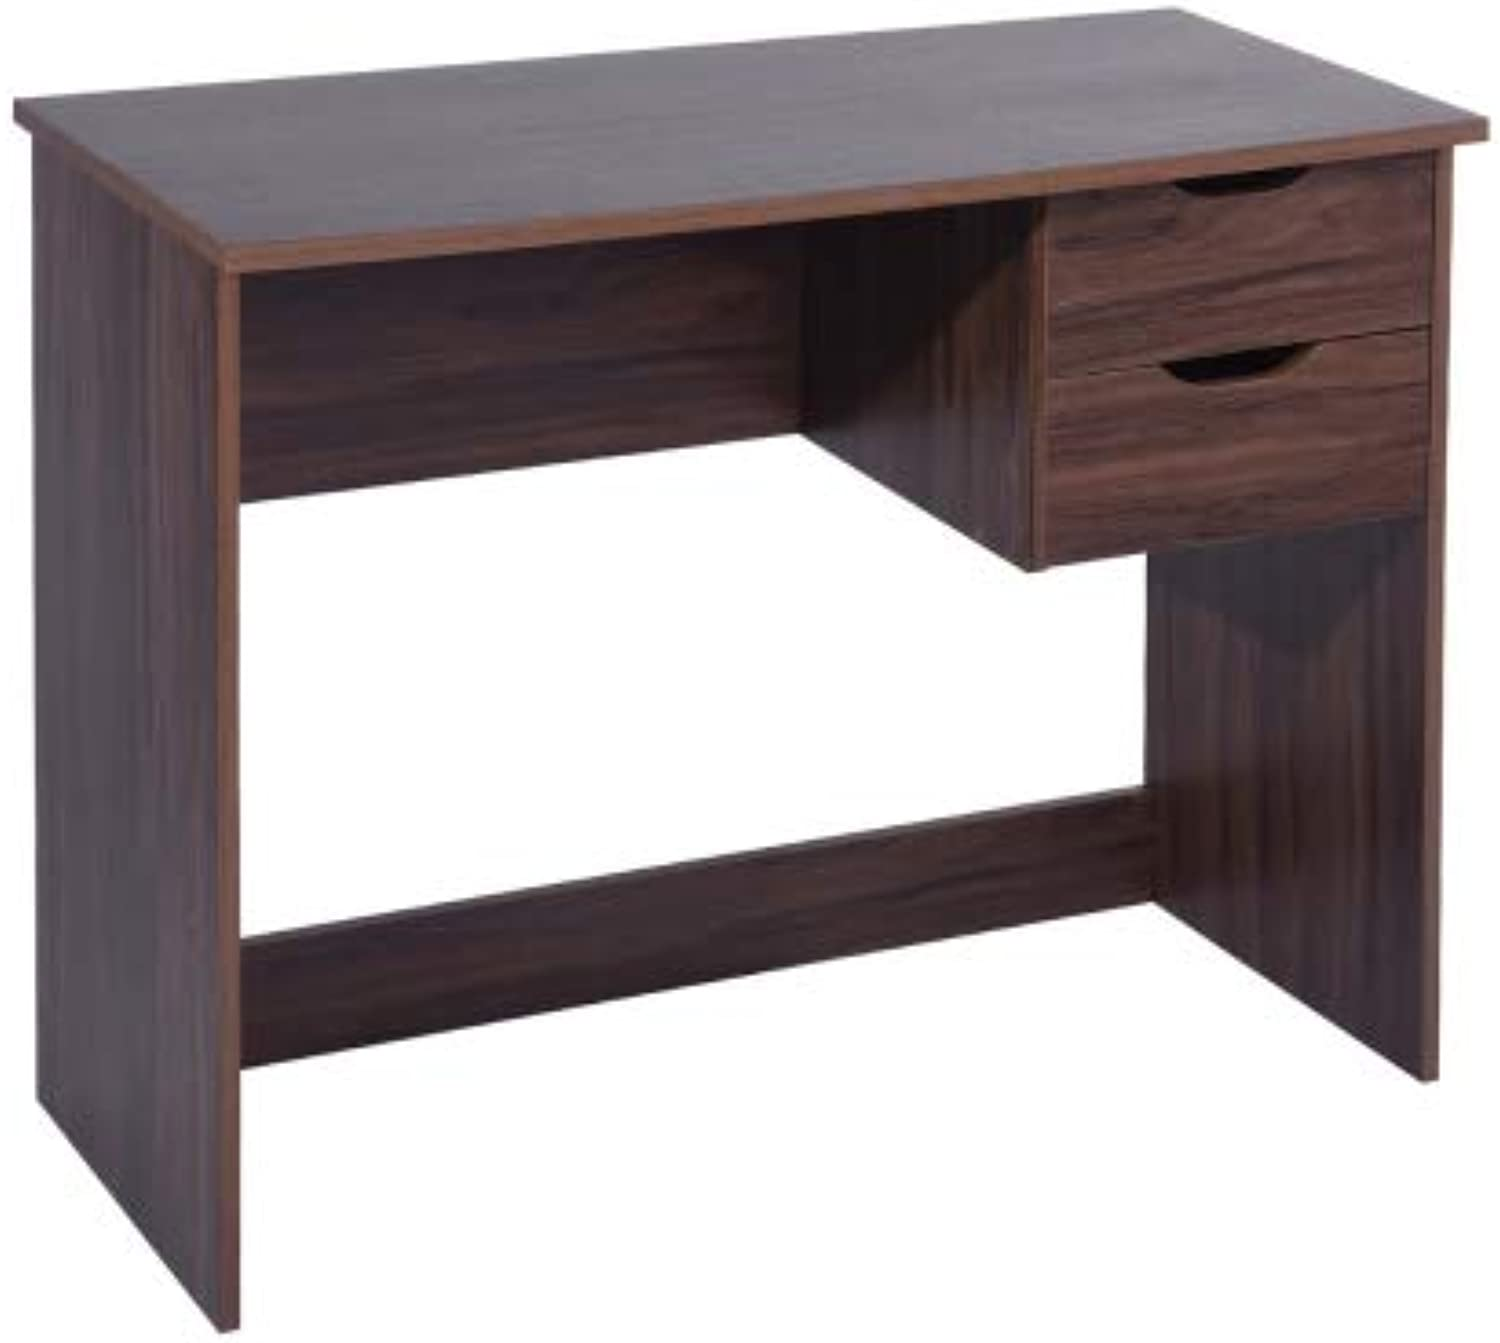 ZF Collections Serenity Home Office Wooden Writing Desk